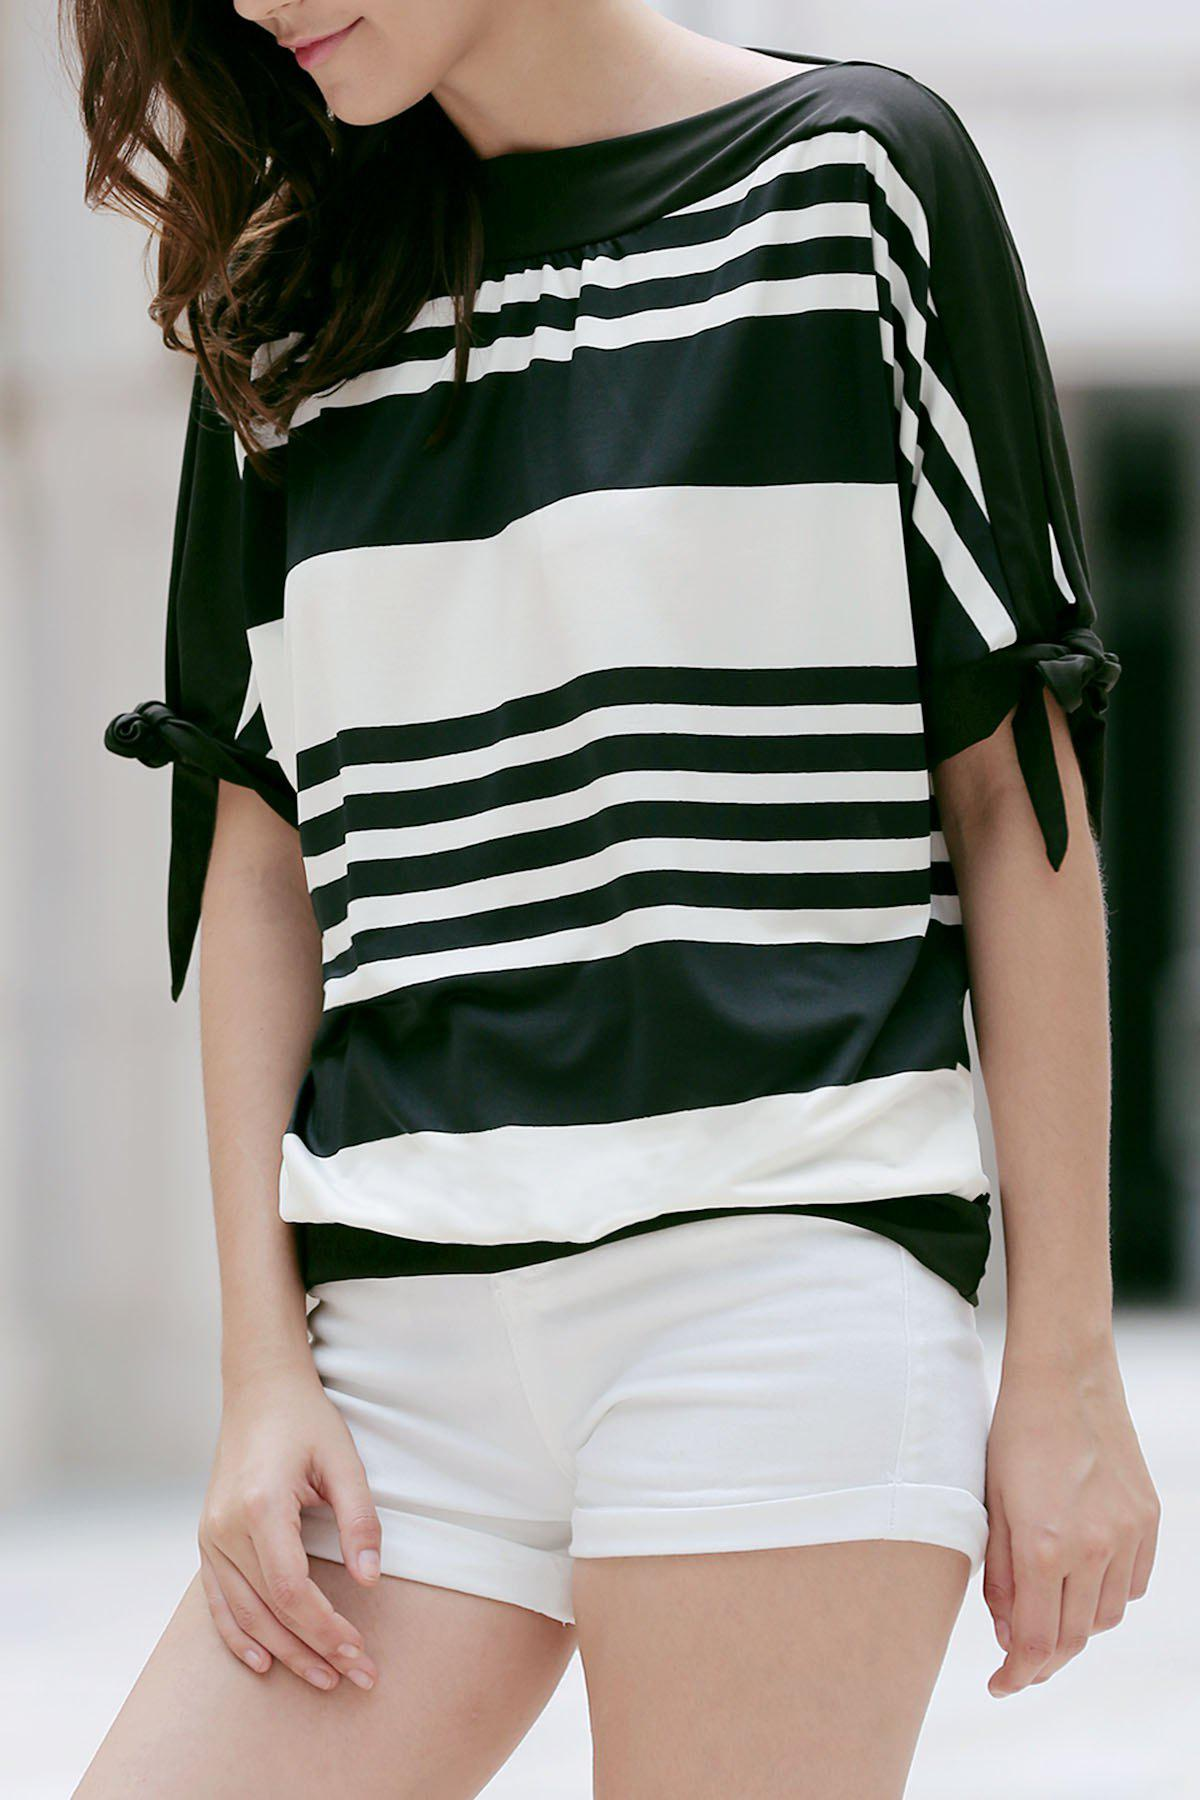 Casual Black and White Striped Short Sleeve Women's T-Shirt - WHITE/BLACK XL